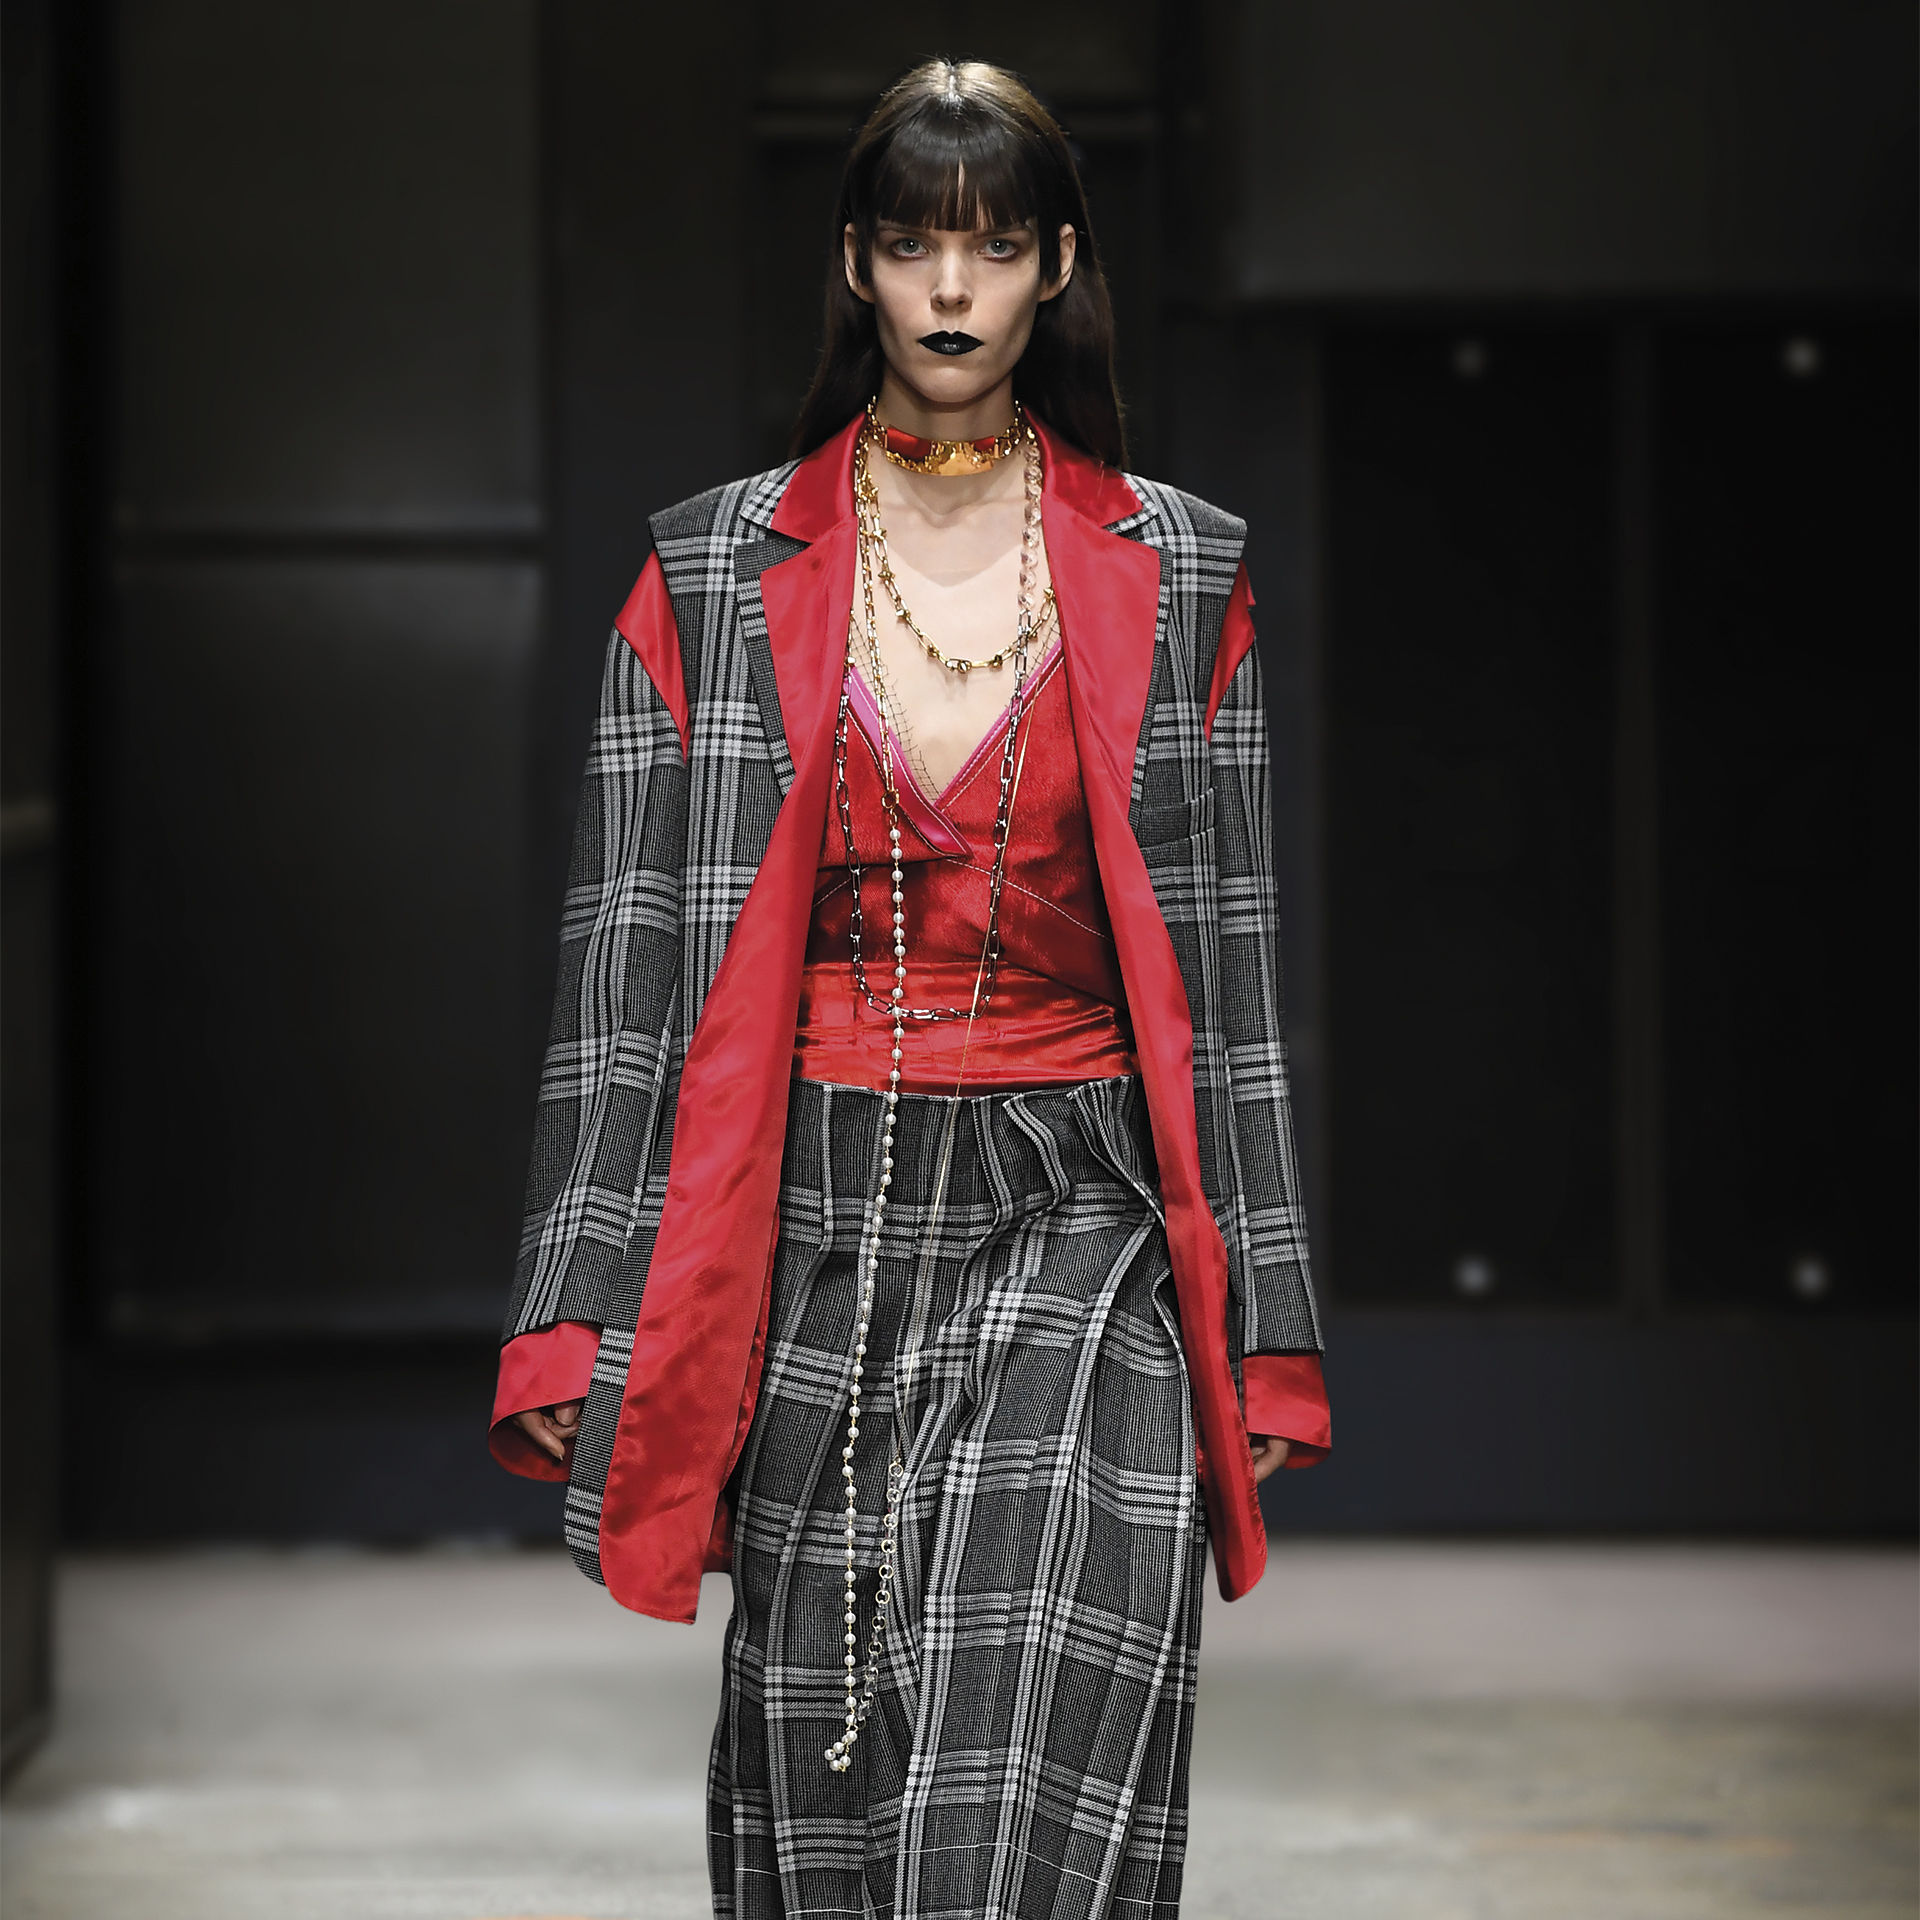 Model wears a red plaid jacket and skirt